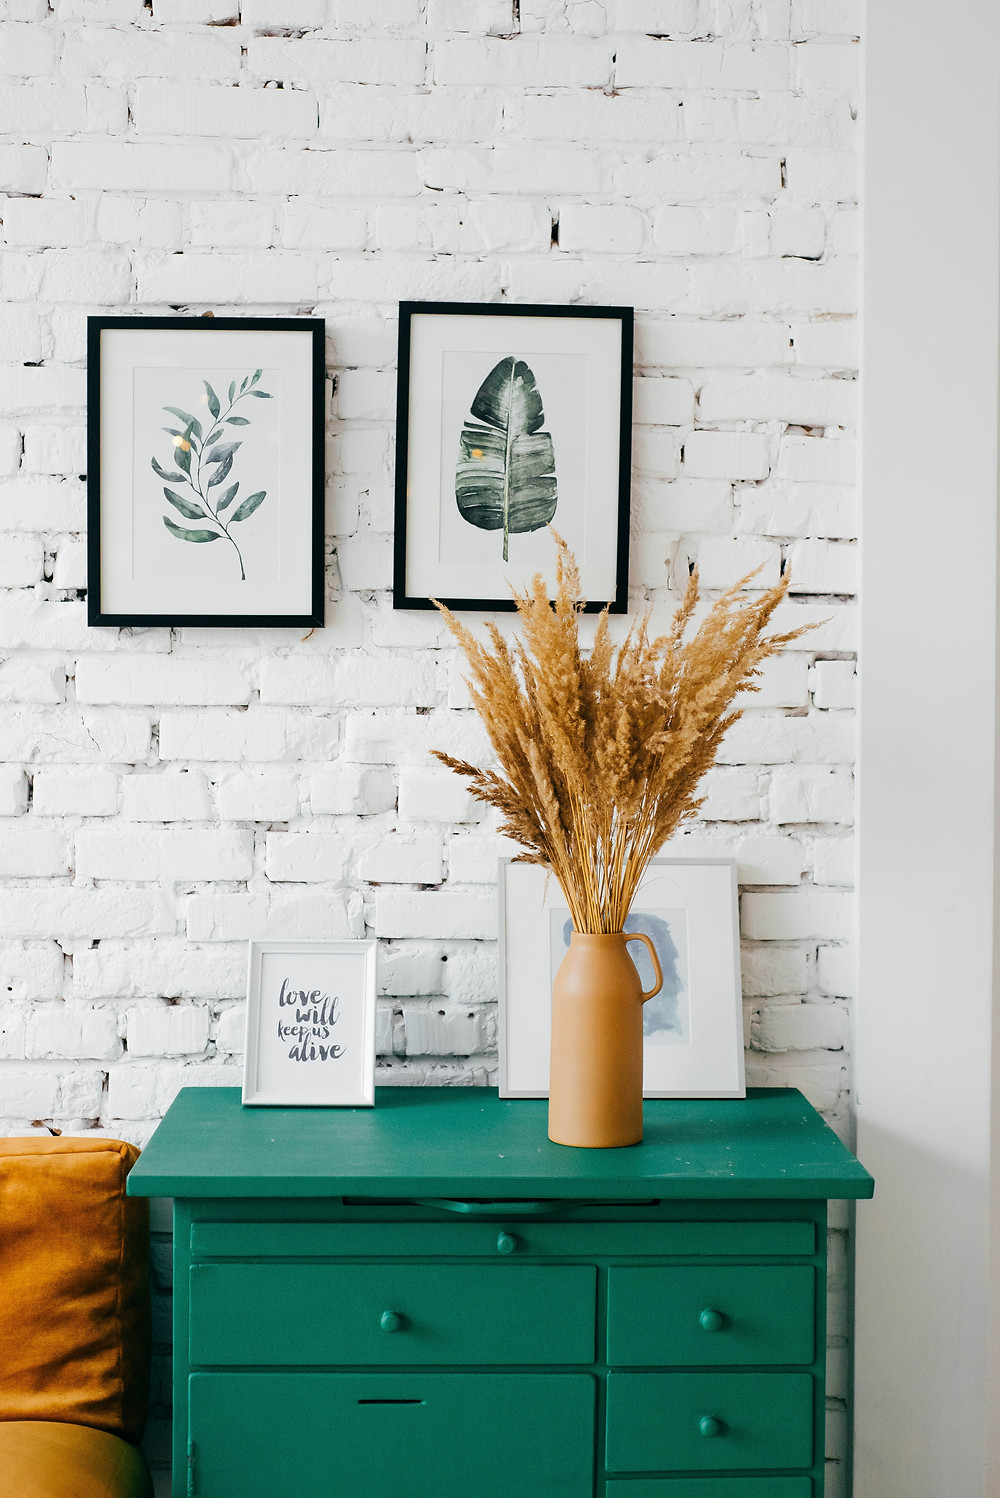 White brick and a green table pop in this photo of an entryway.